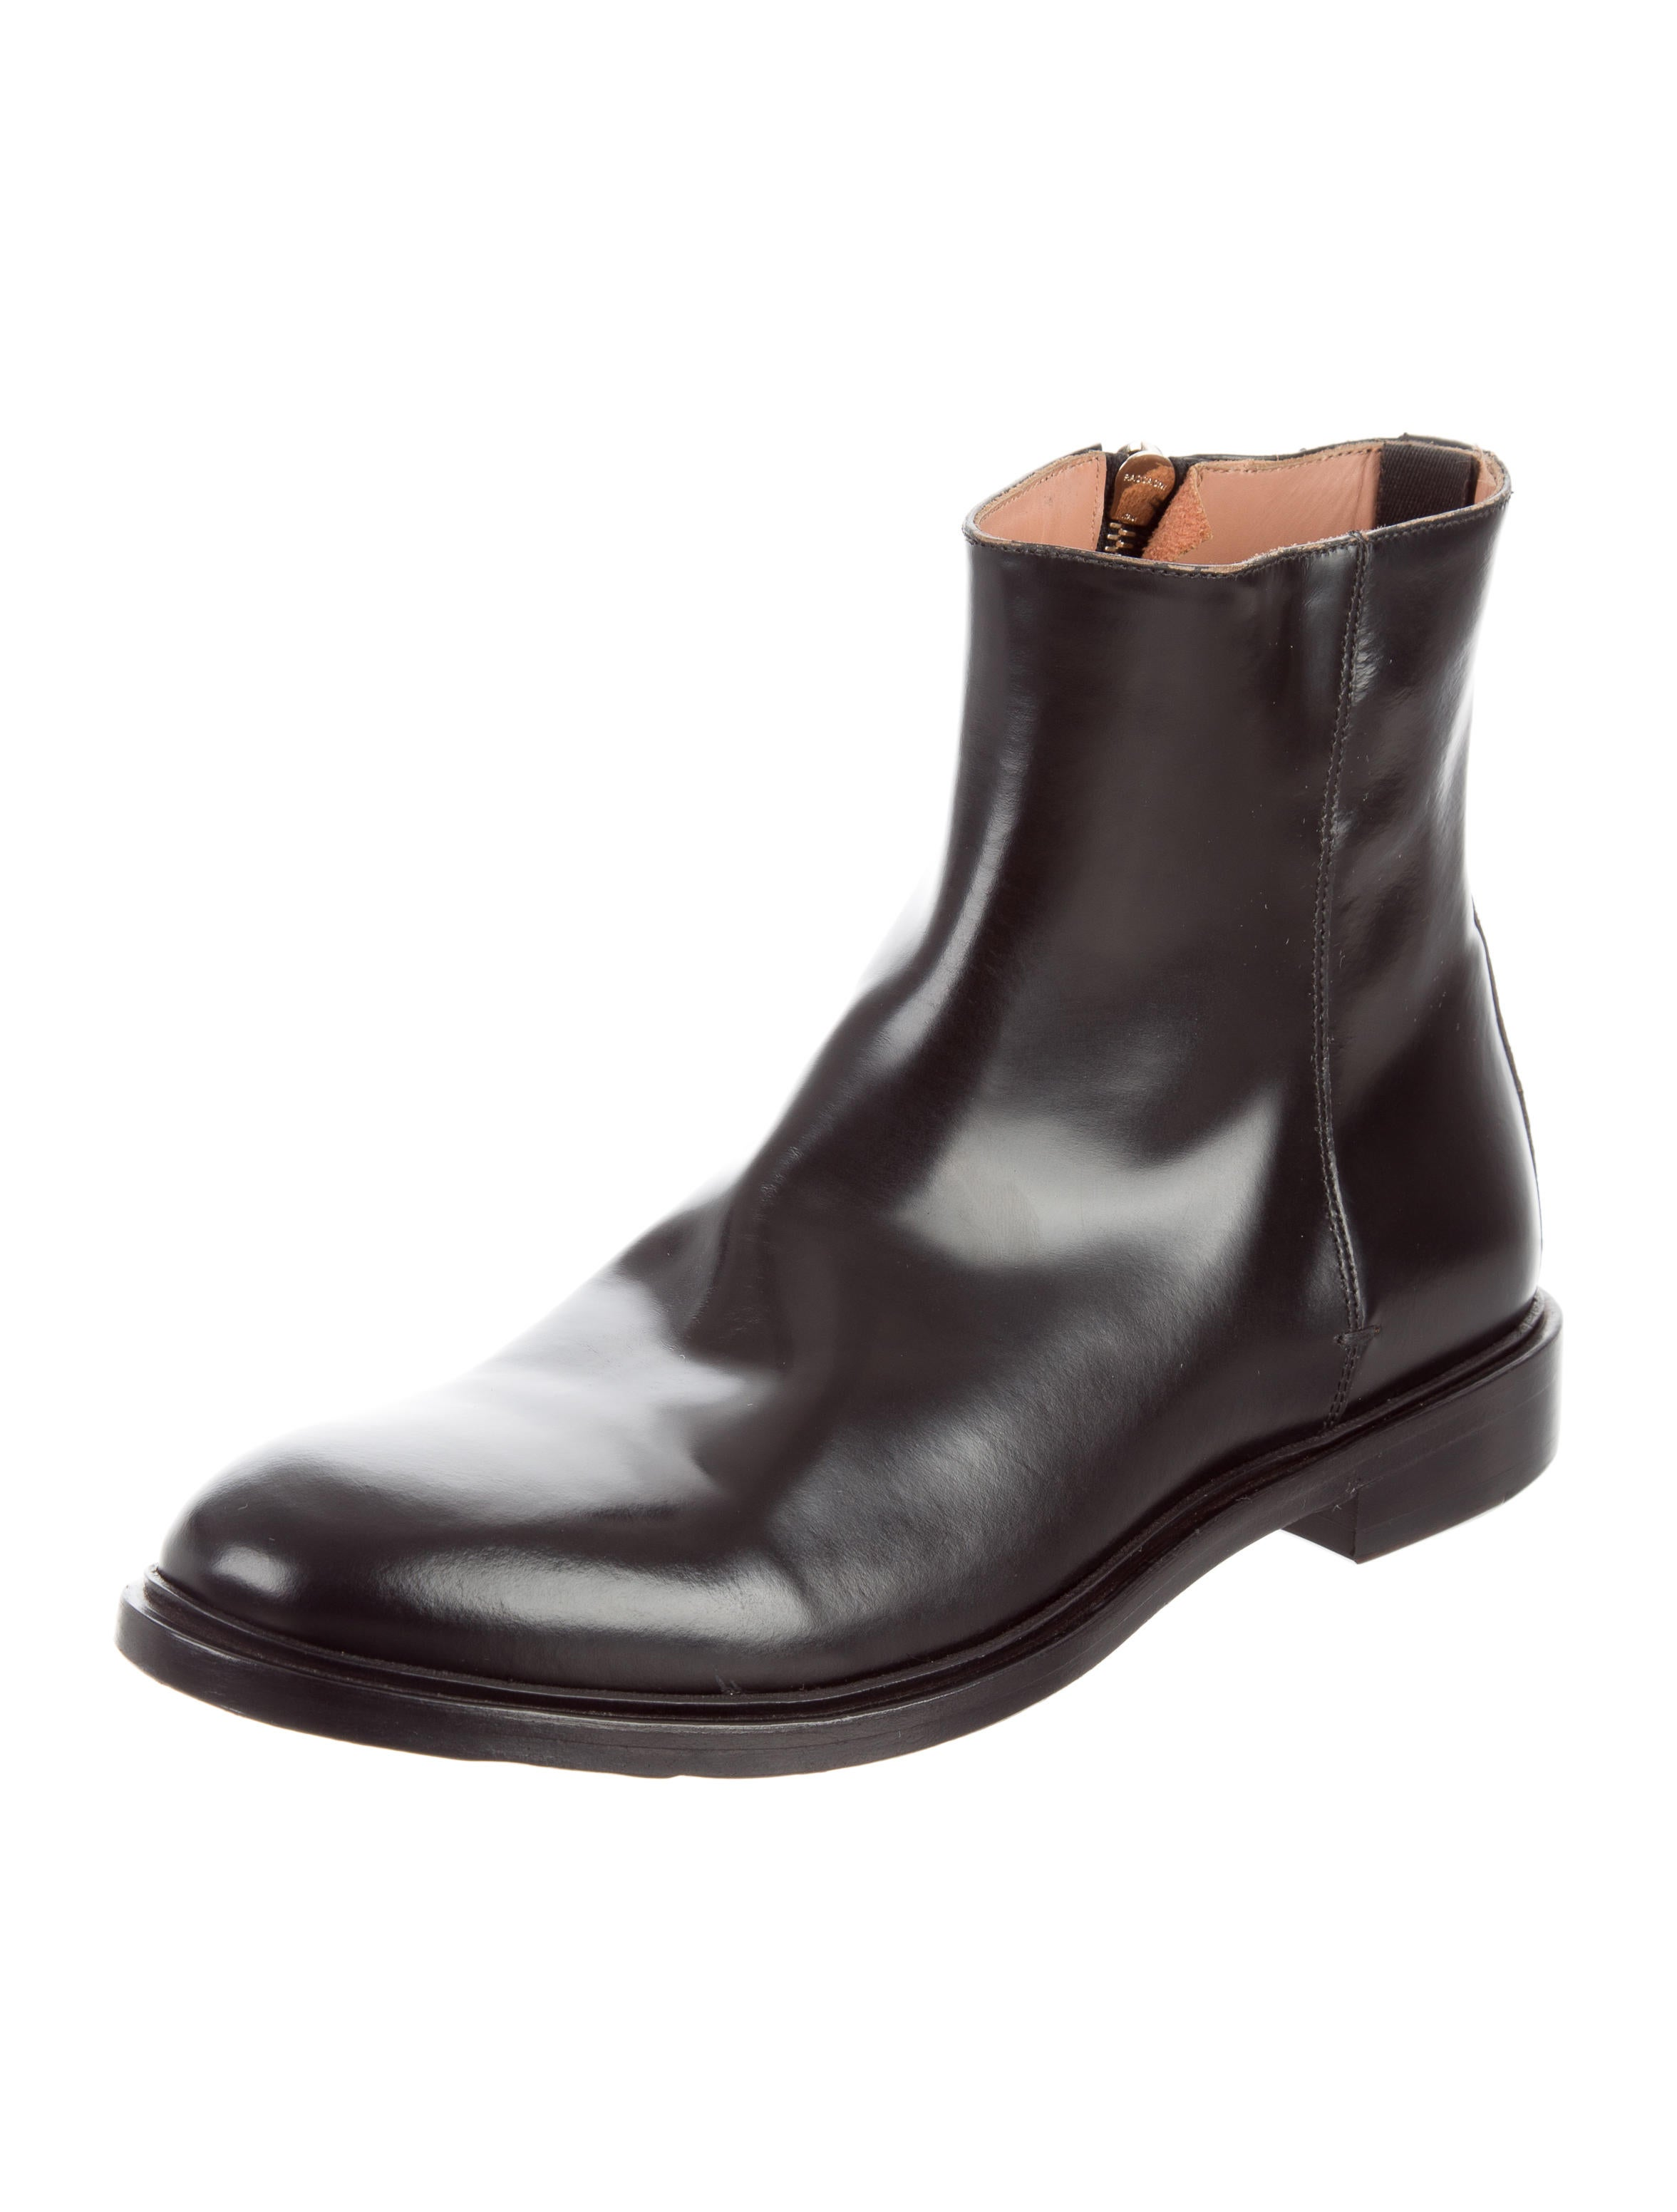 Shop black patent leather ankle boots at Neiman Marcus, where you will find free shipping on the latest in fashion from top designers.